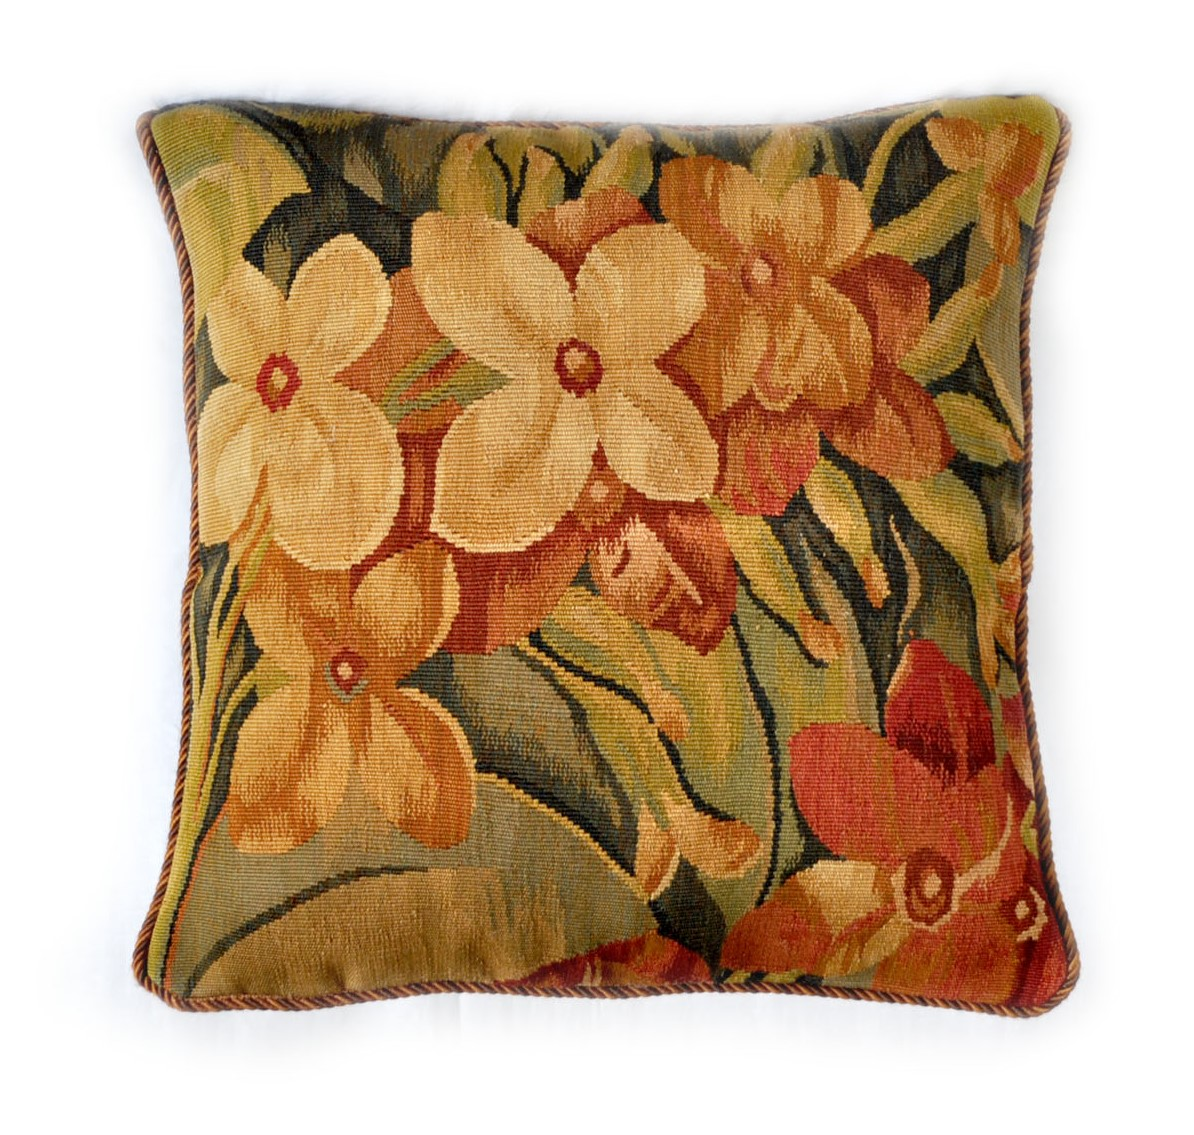 18″ x 18″ Handmade French Gobelins Tapestry Weave Wool Aubusson Cushion Cover Pillow Case 12980025